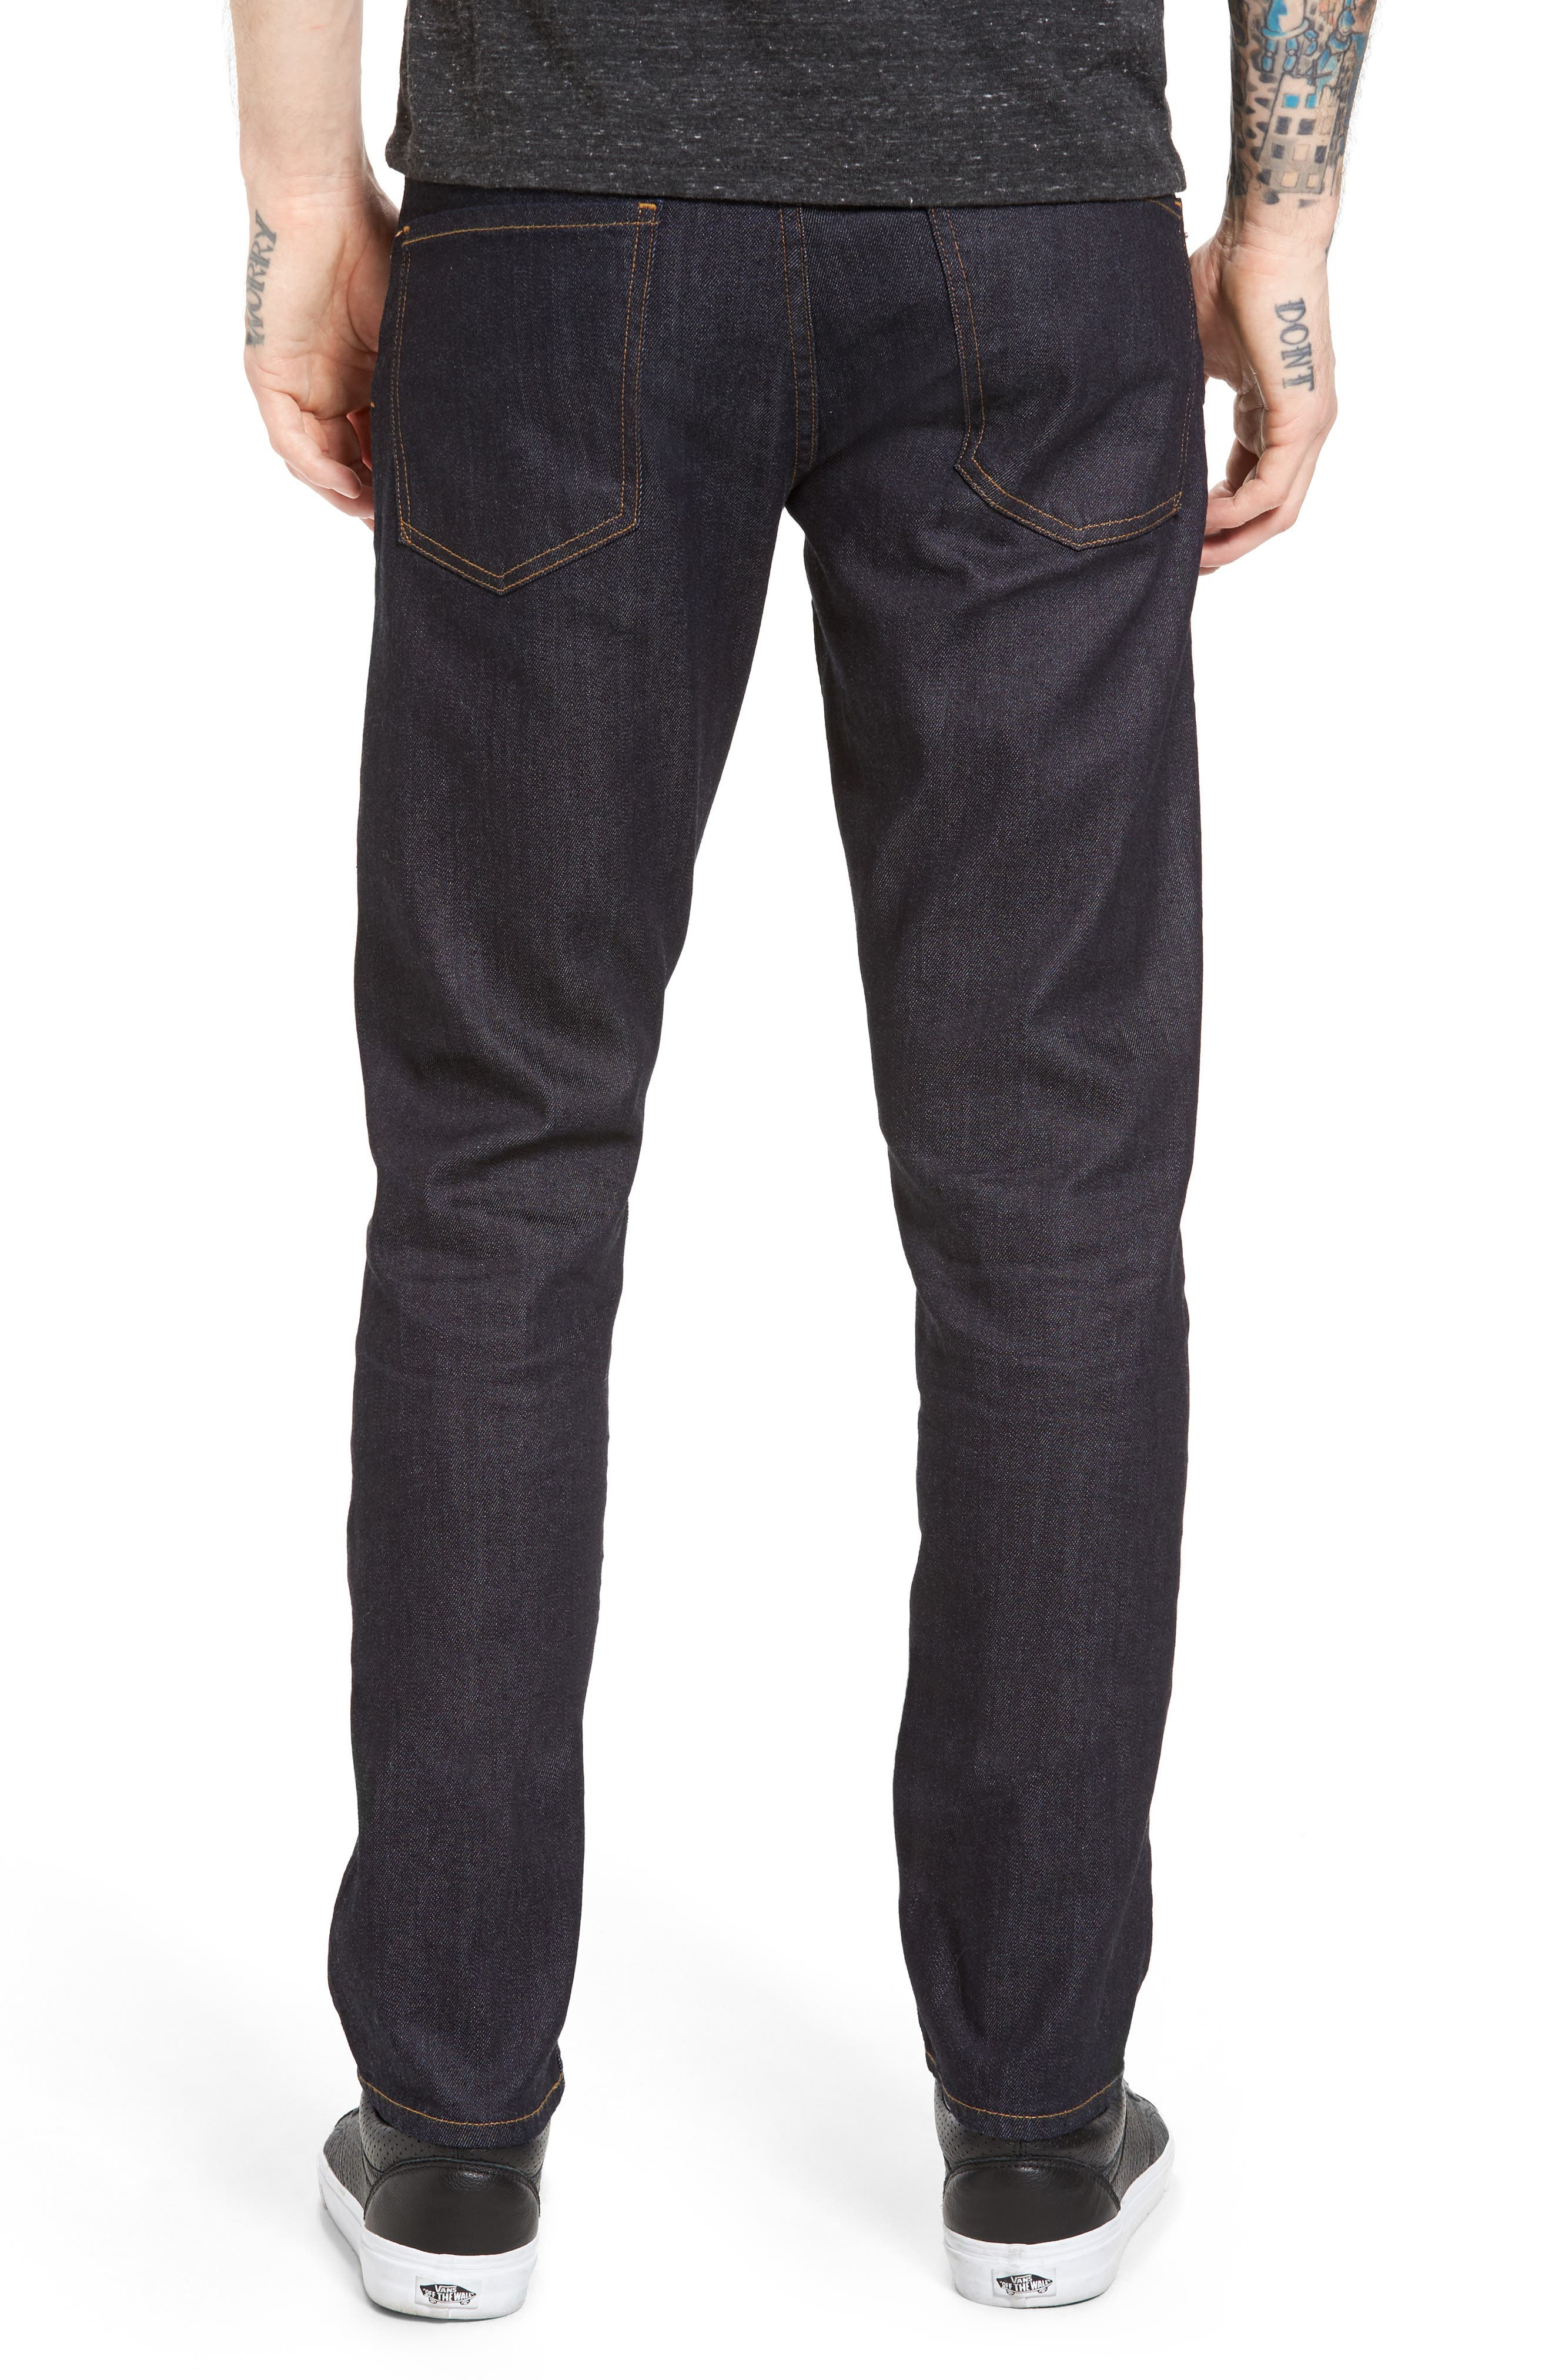 Bowery Slim Fit Jeans,                             Alternate thumbnail 3, color,                             432